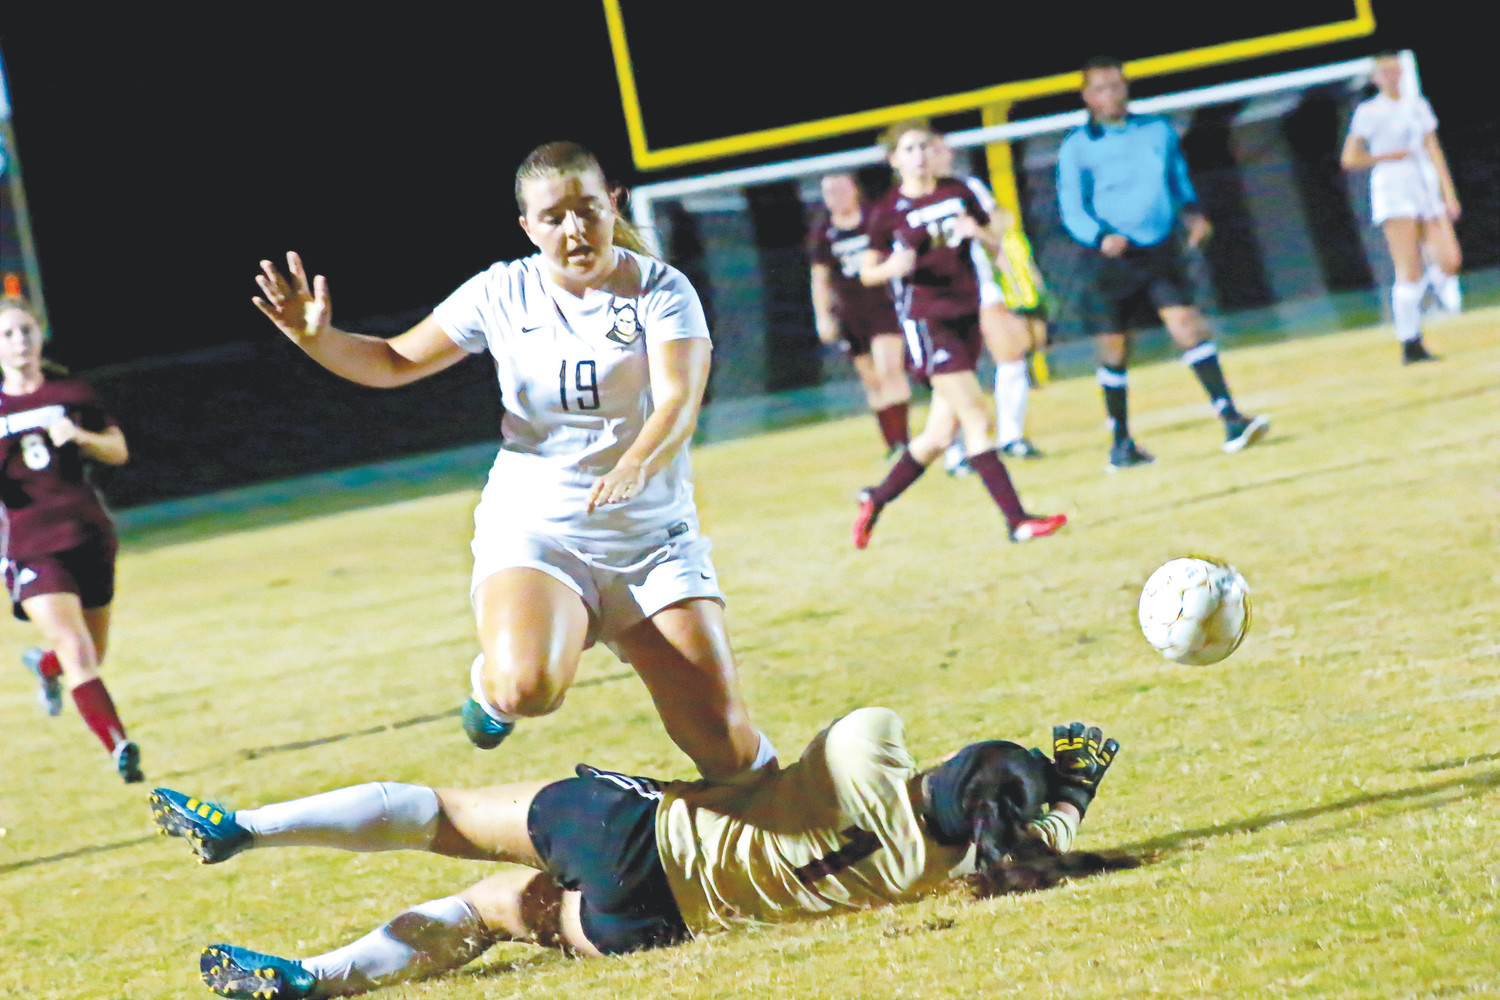 Oakleaf forward Micaela French barrels over St. Augustine goalie in effort for loose ball. French scored a goal in first half of Knights' 9-1 district season opener on Nov. 6.